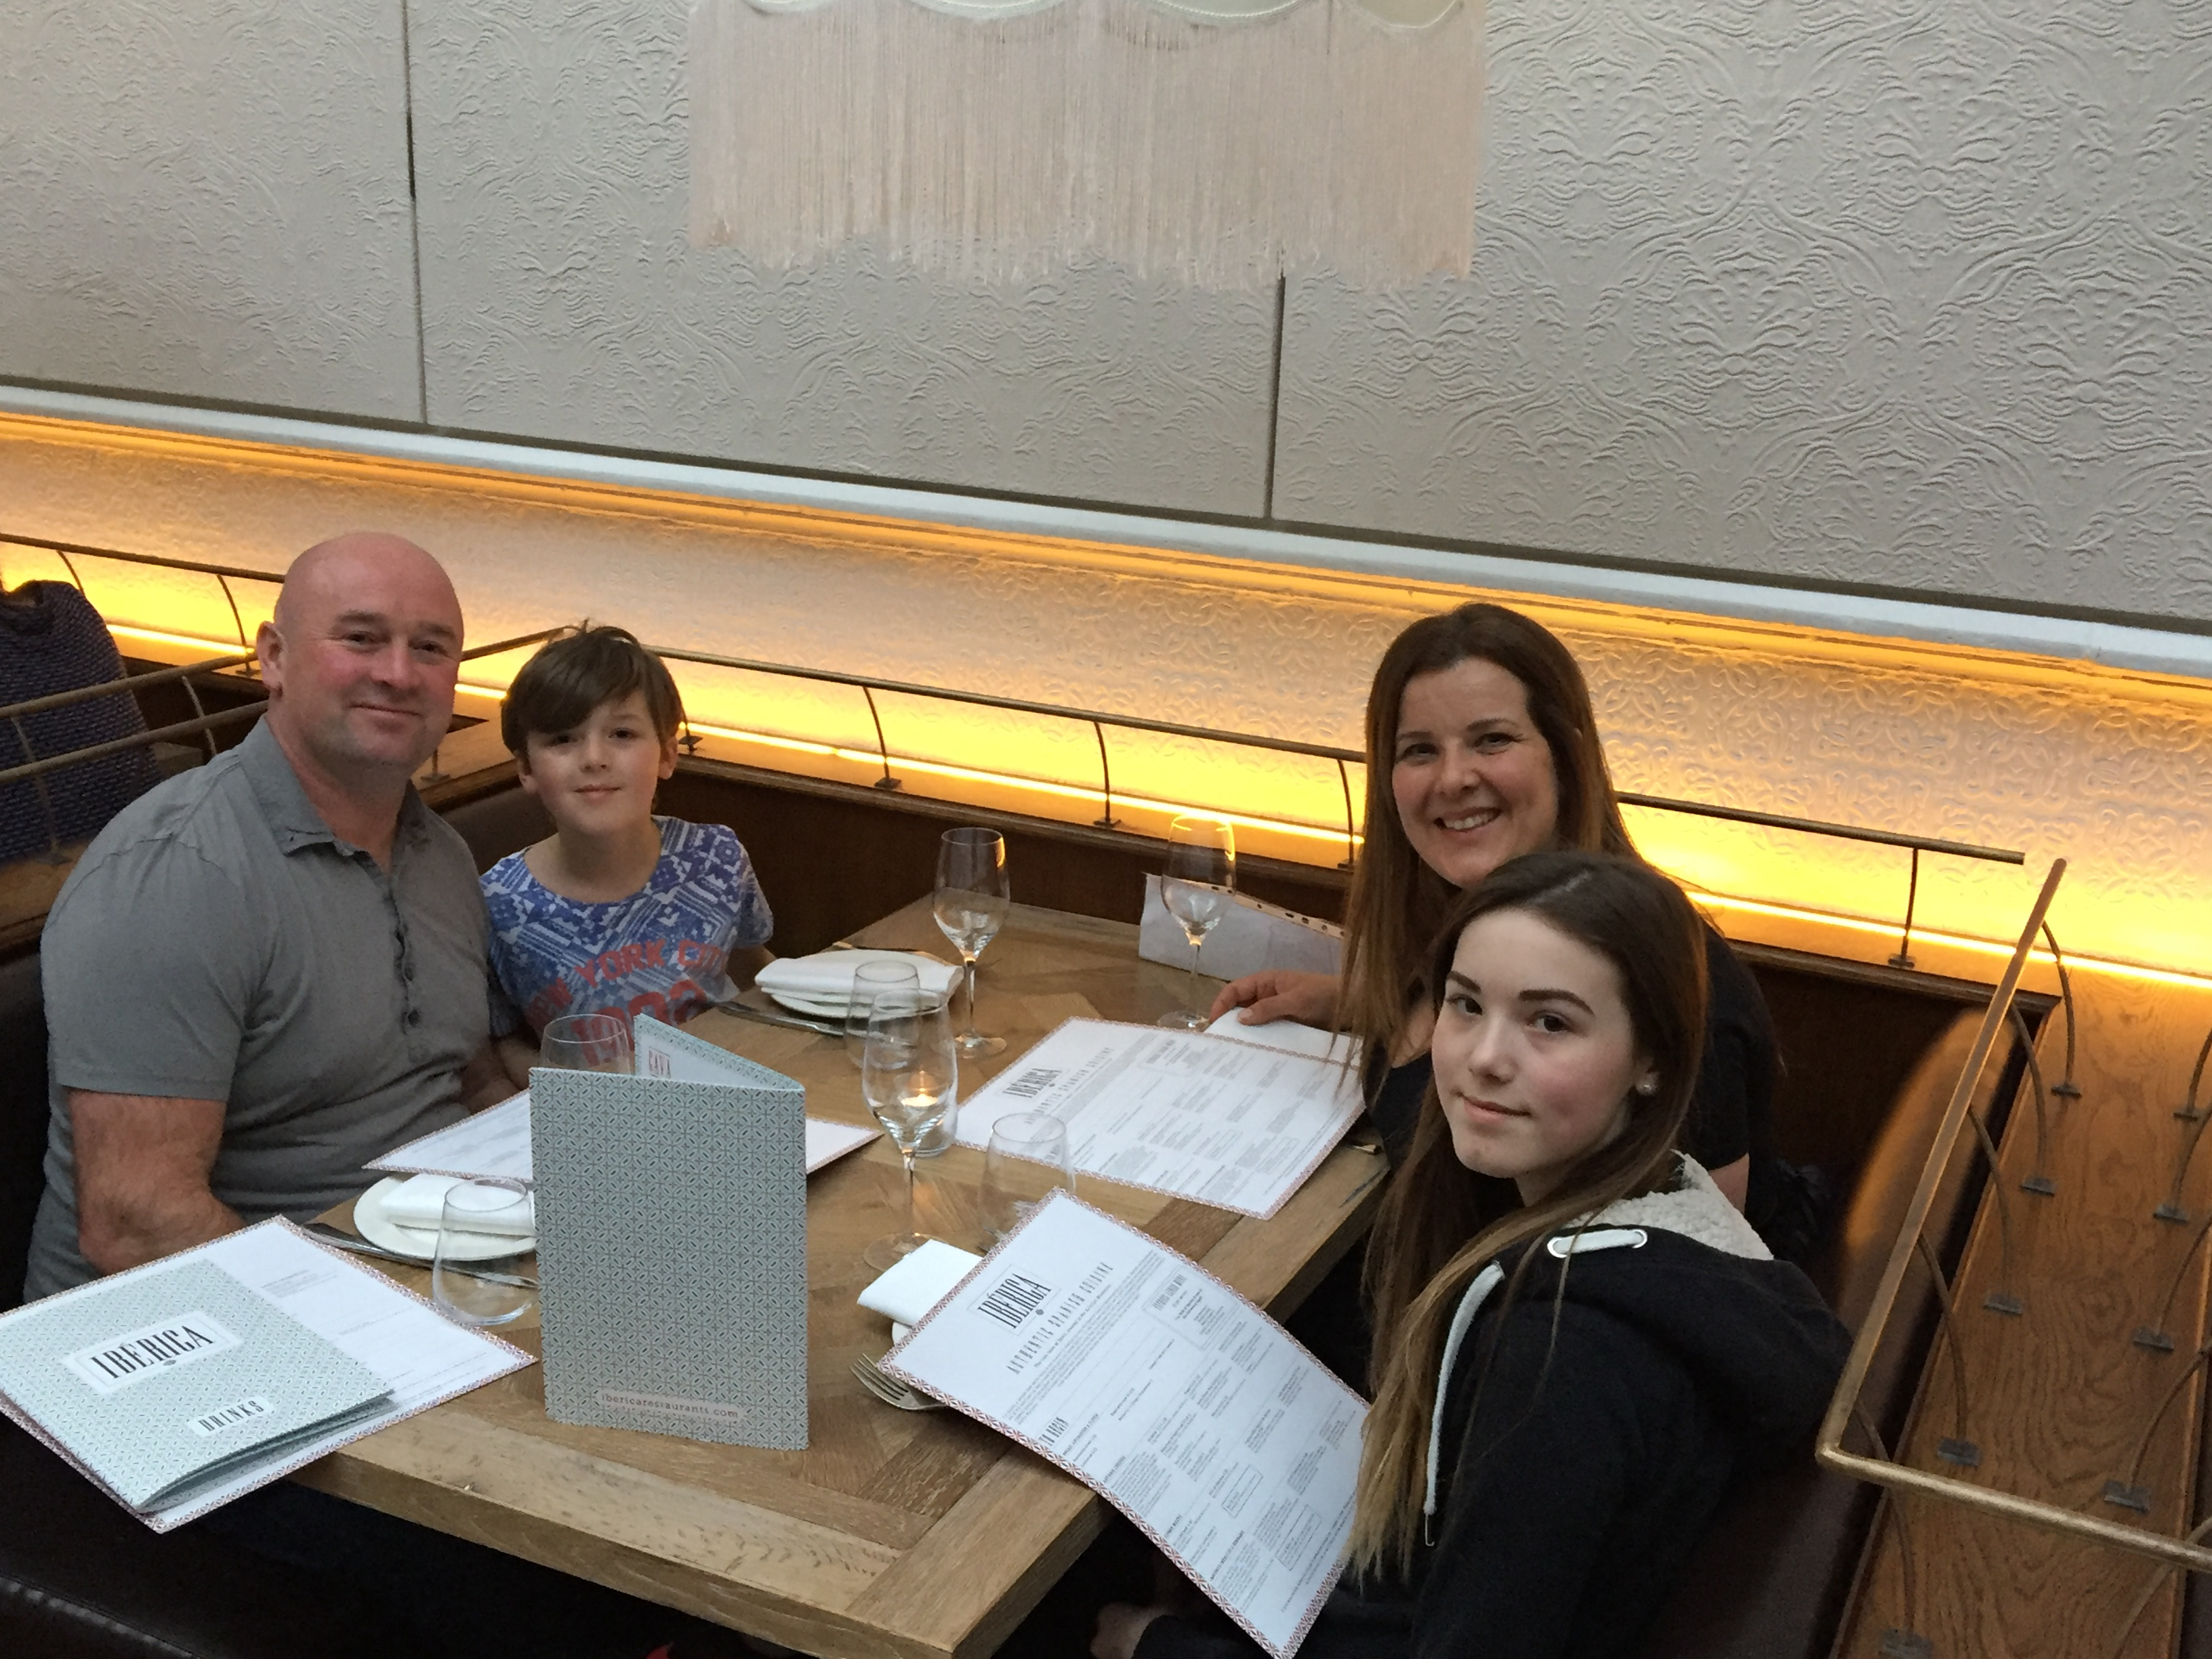 Hill family at Iberica